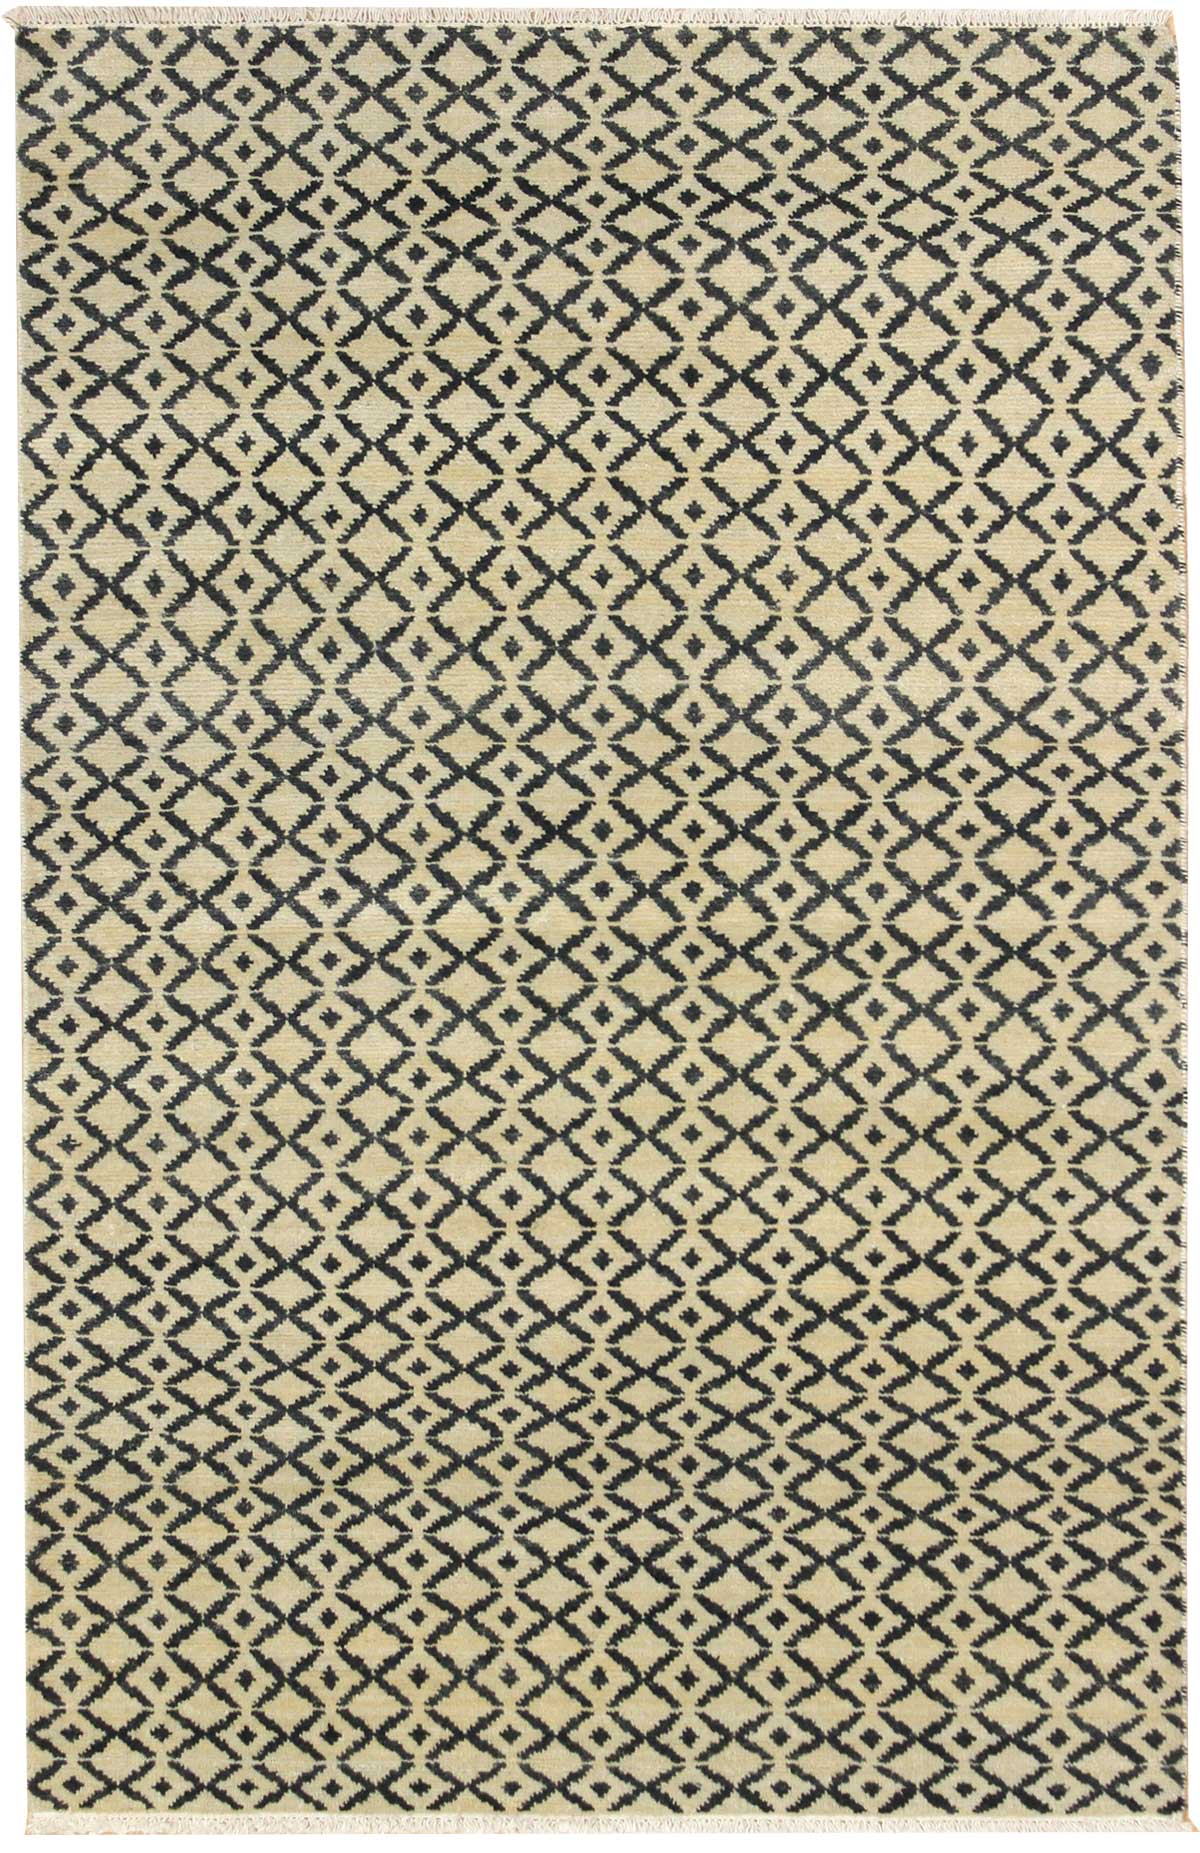 Grids Handwoven Contemporary Rug